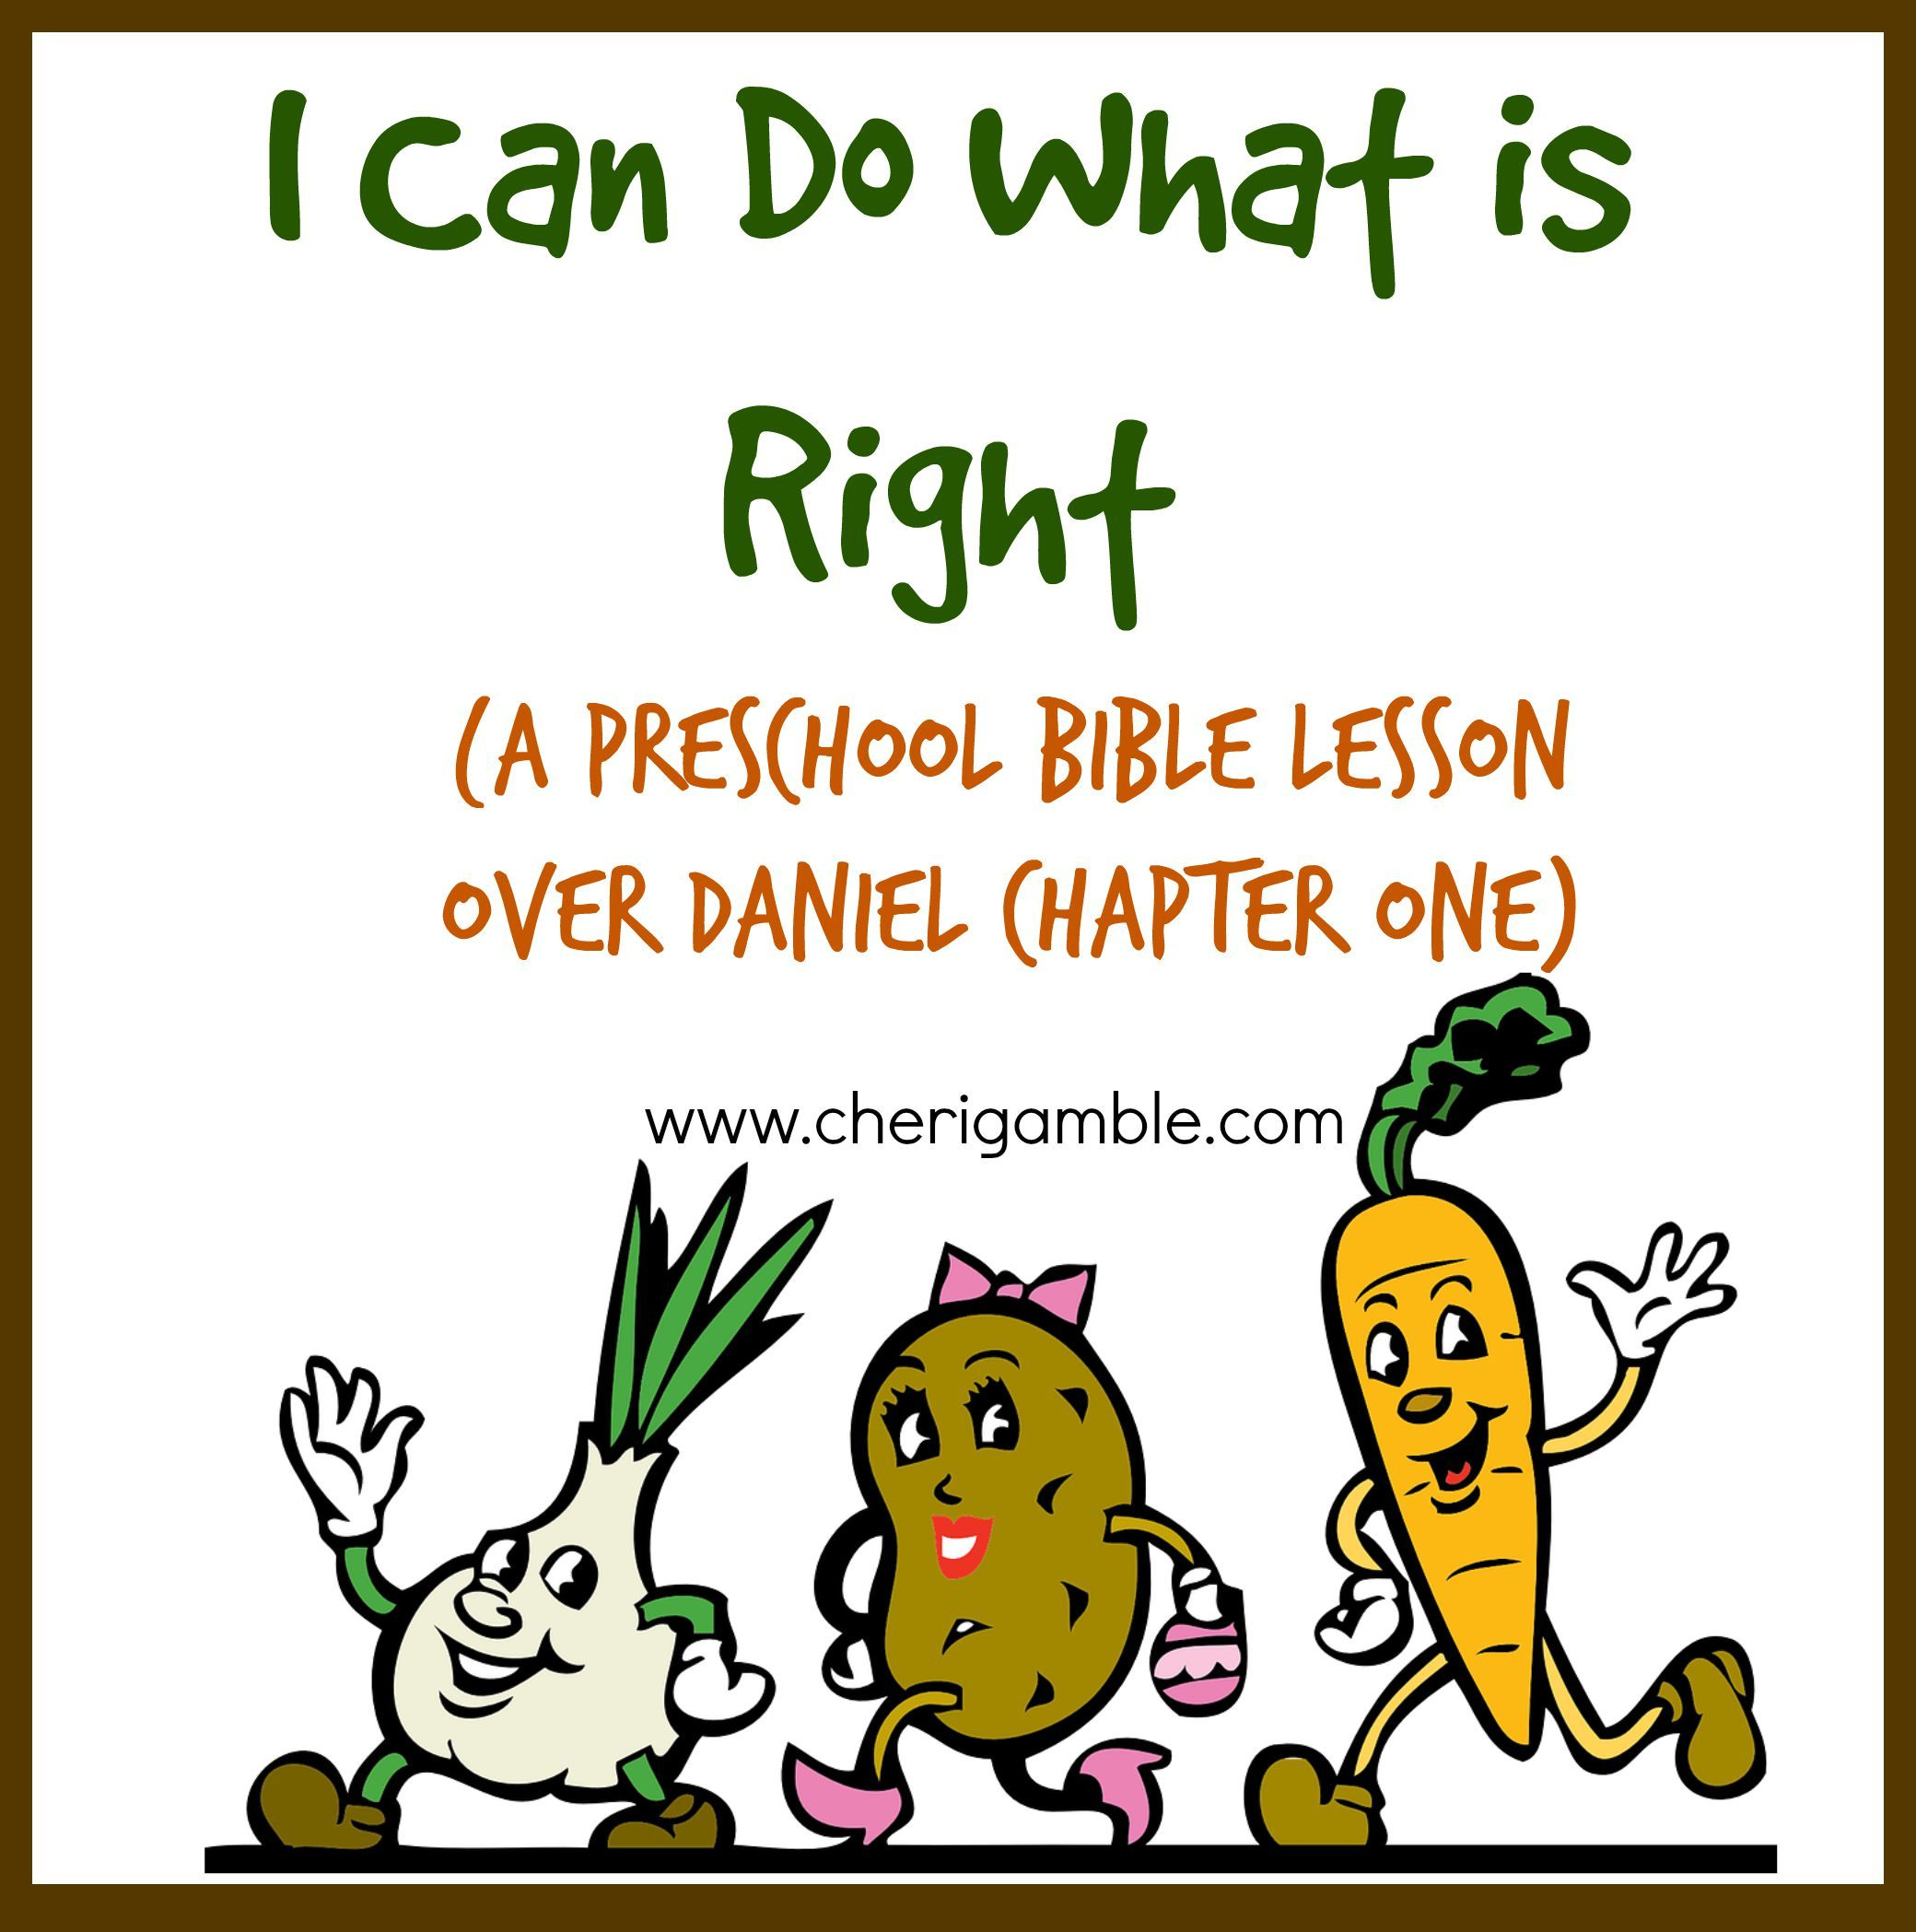 I Can Do What Is Right Preschool Bible Lesson Over Daniel